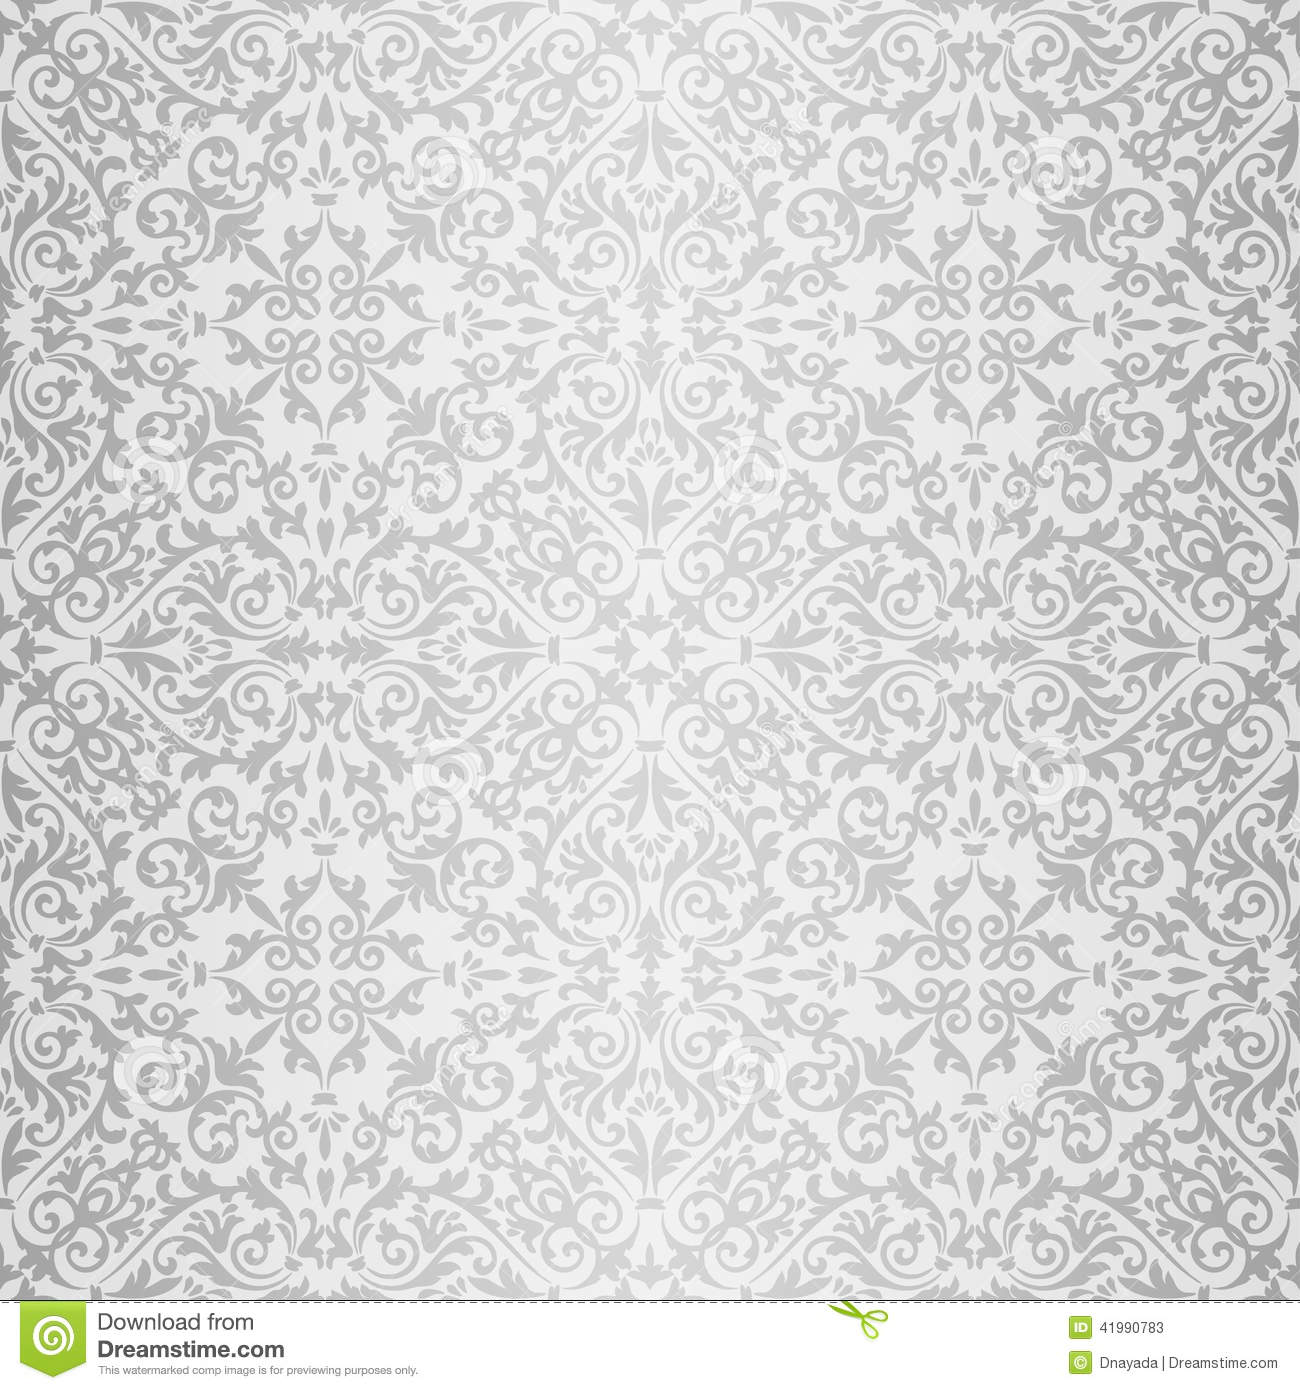 silver baroque stock illustrations 5280 silver baroque stock illustrations vectors clipart dreamstime